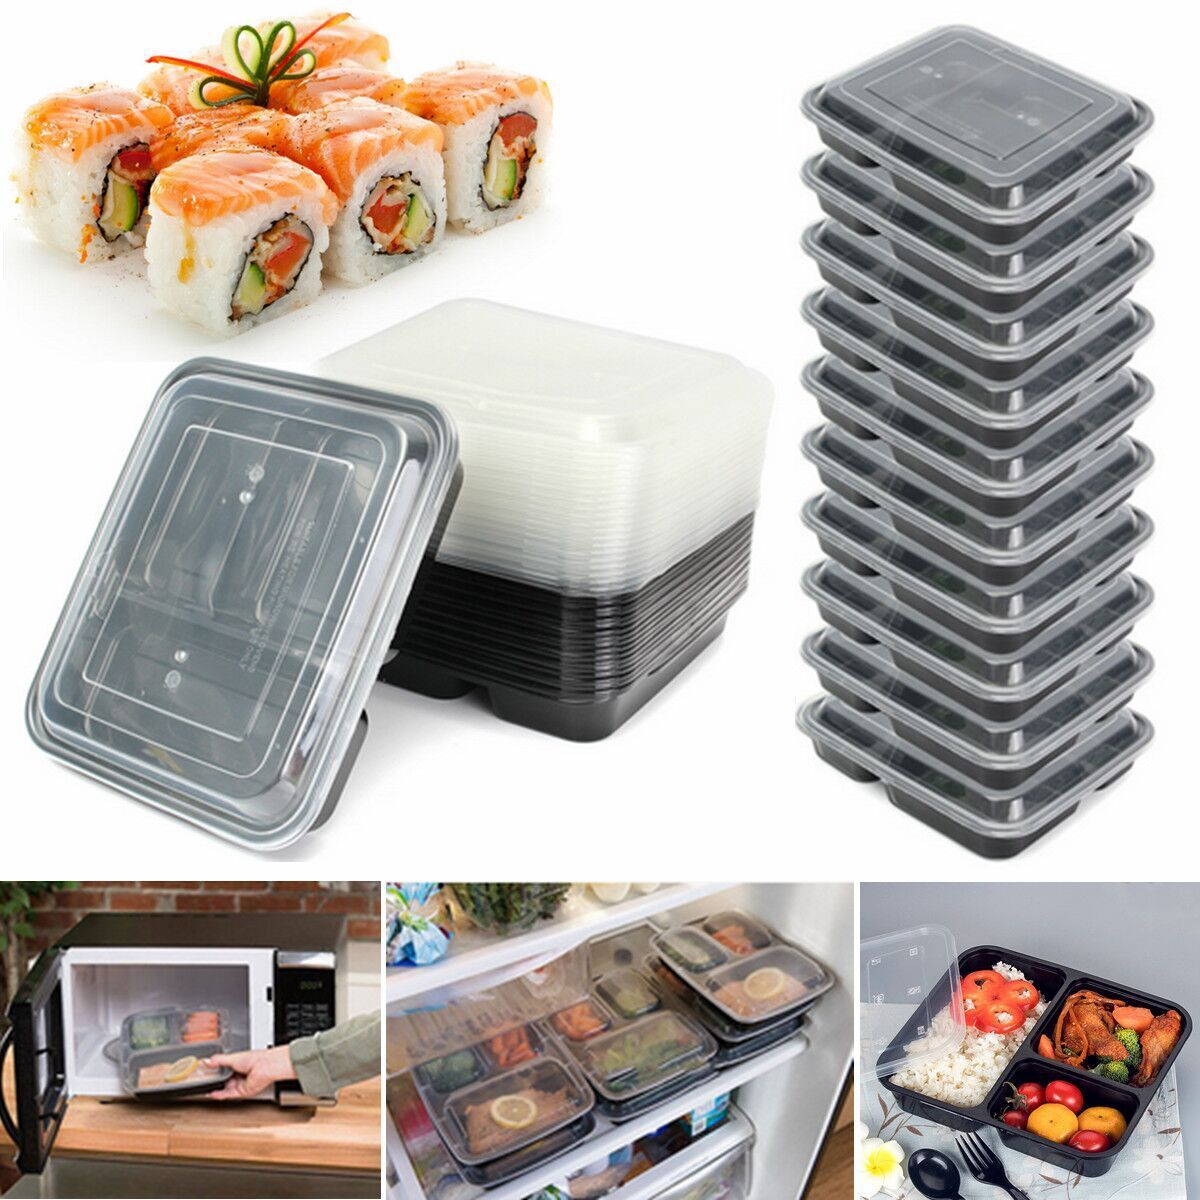 10 20pcs microwave plastic meal prep container lunch box food storage takeaway ebay. Black Bedroom Furniture Sets. Home Design Ideas